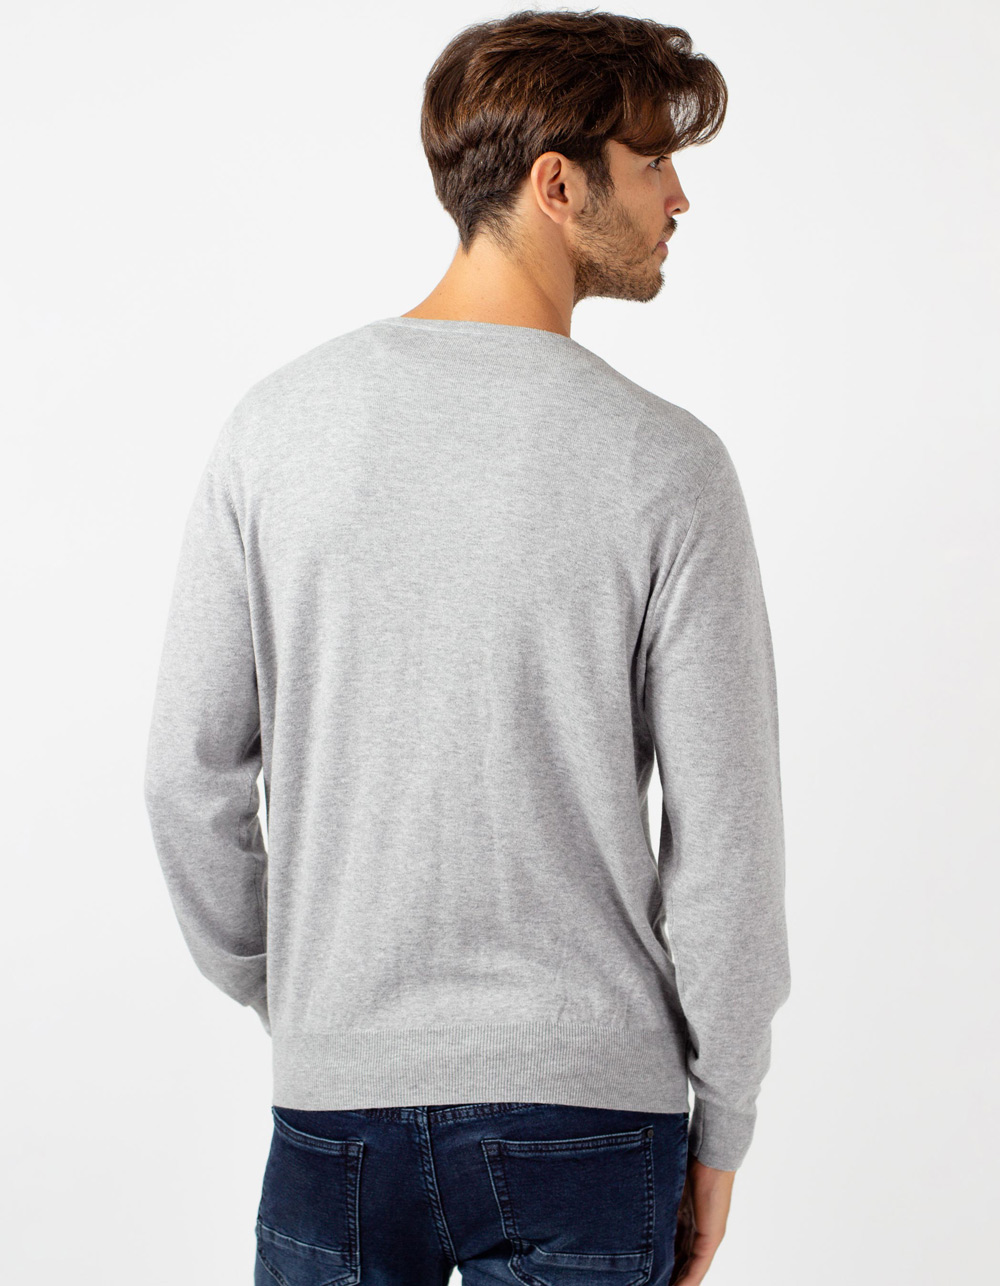 Jersey de cuello pico gris claro - Backside